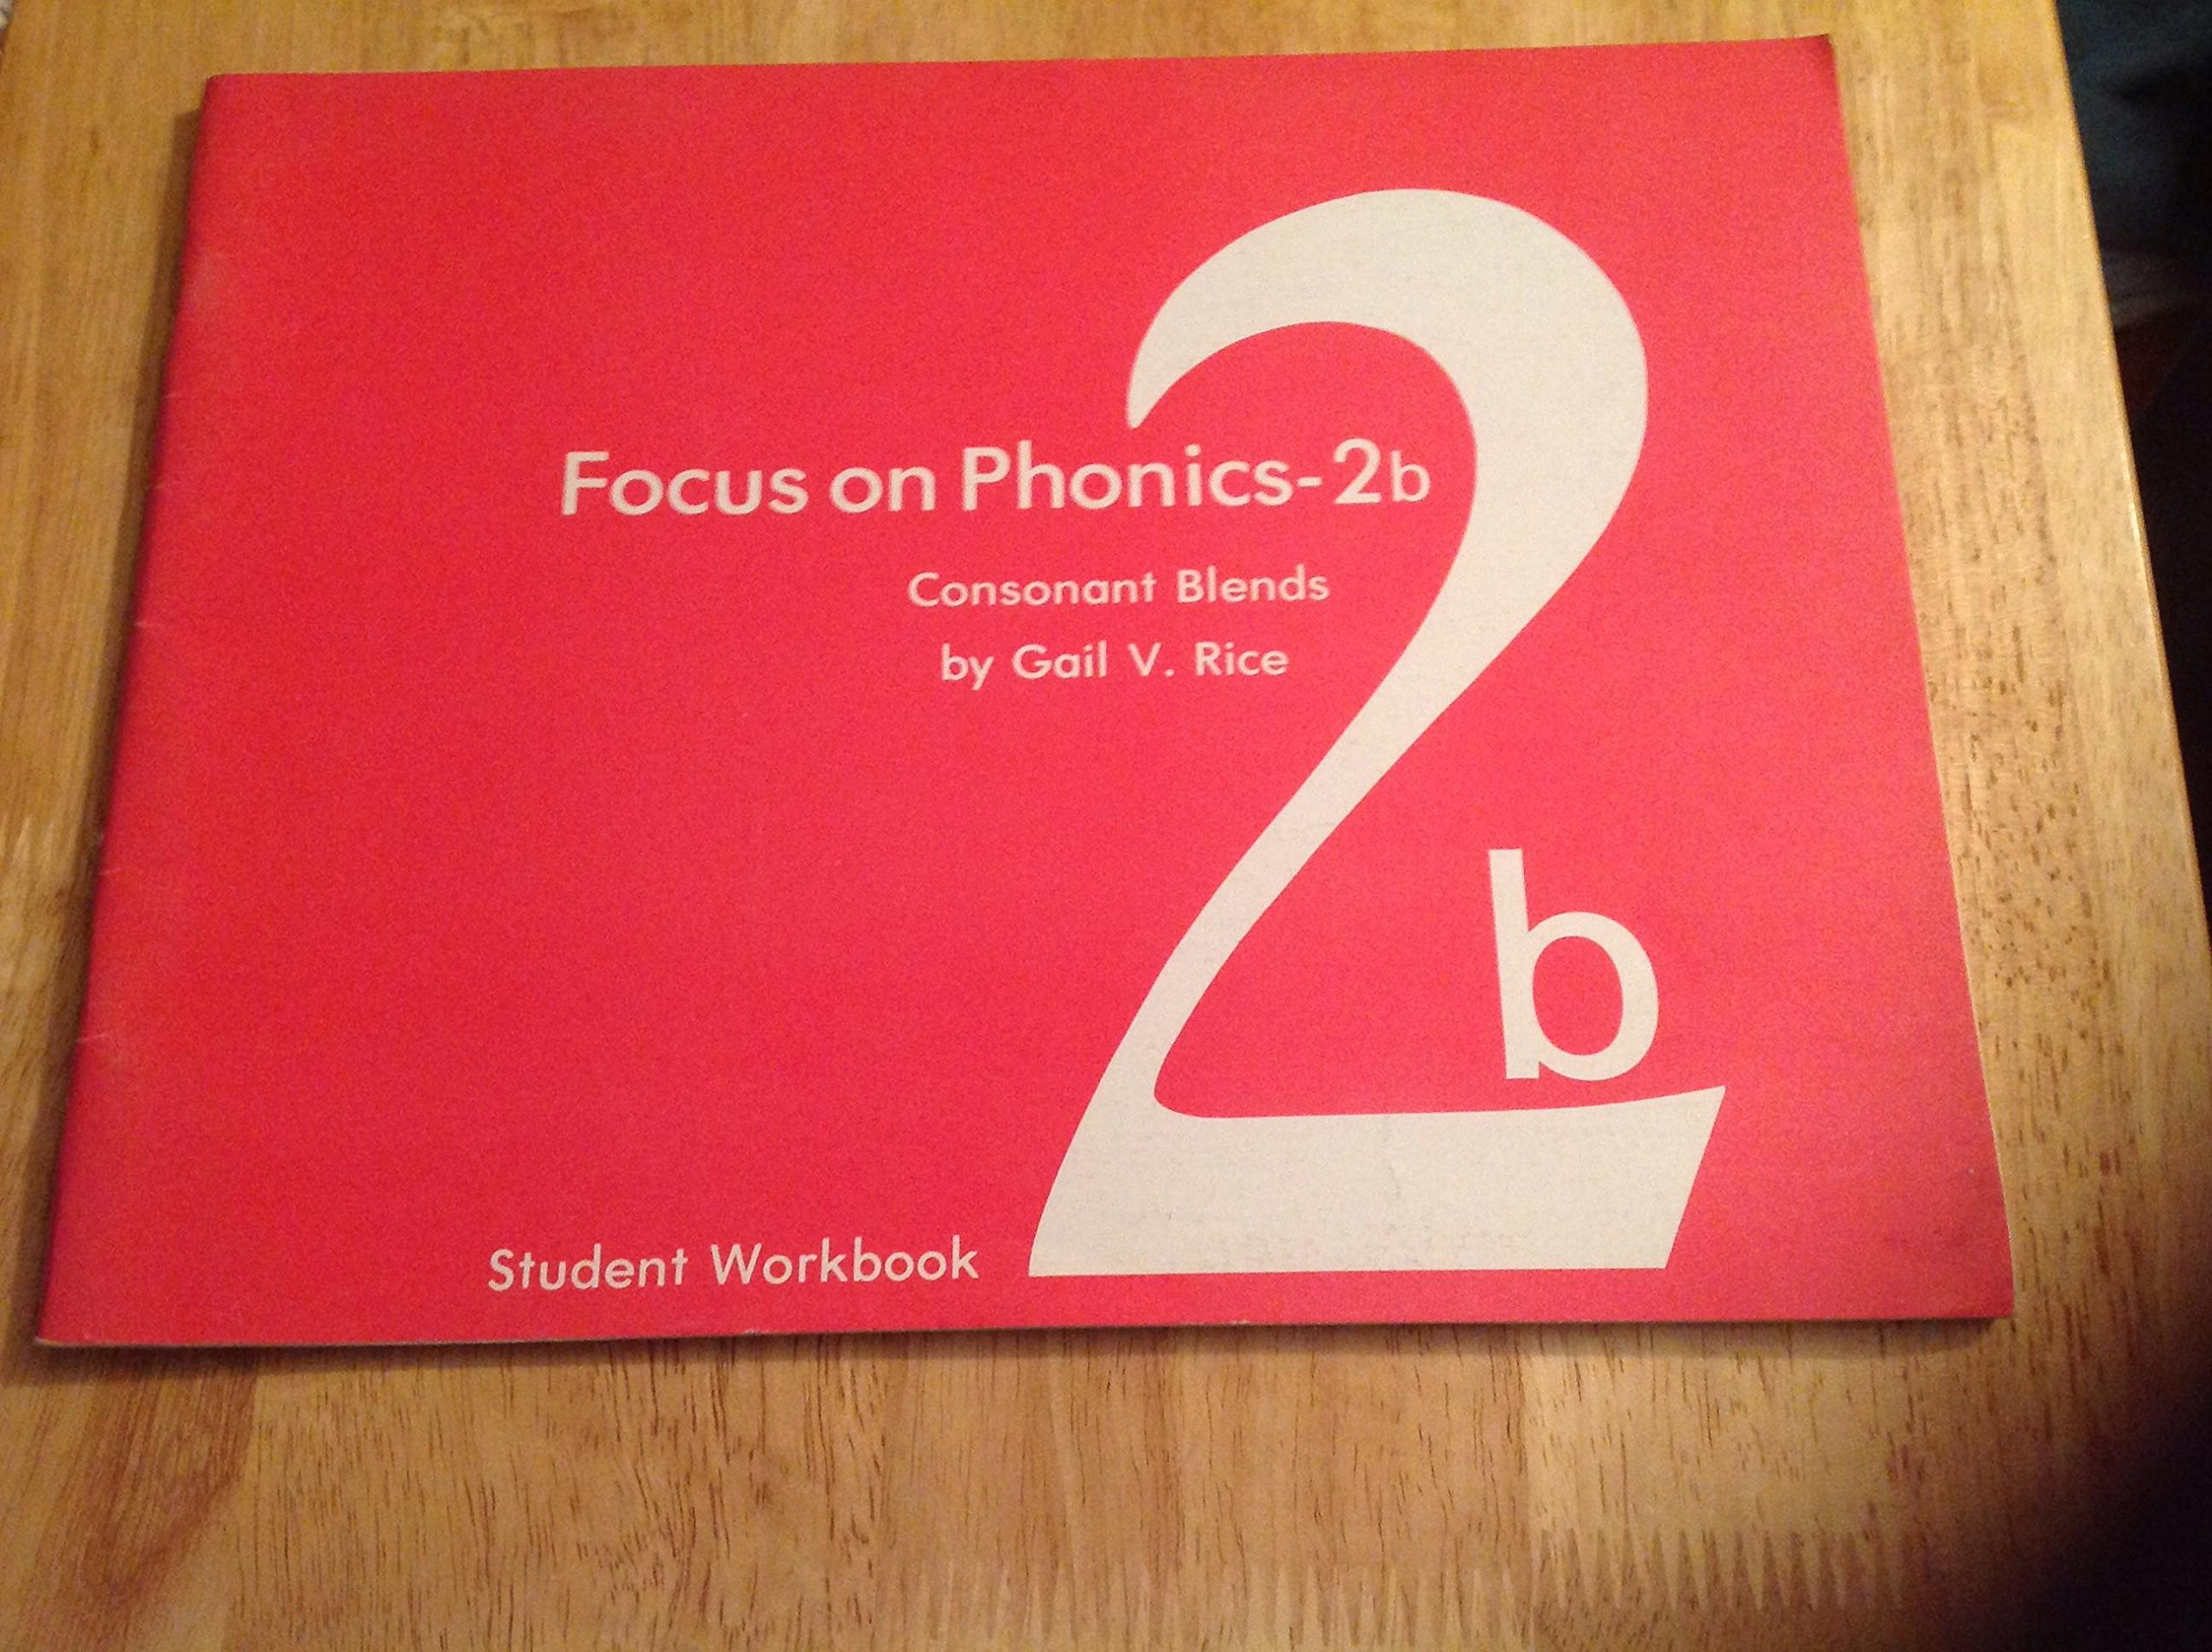 Focus on Phonics 2B: Consonant Blends (Student Workbook)